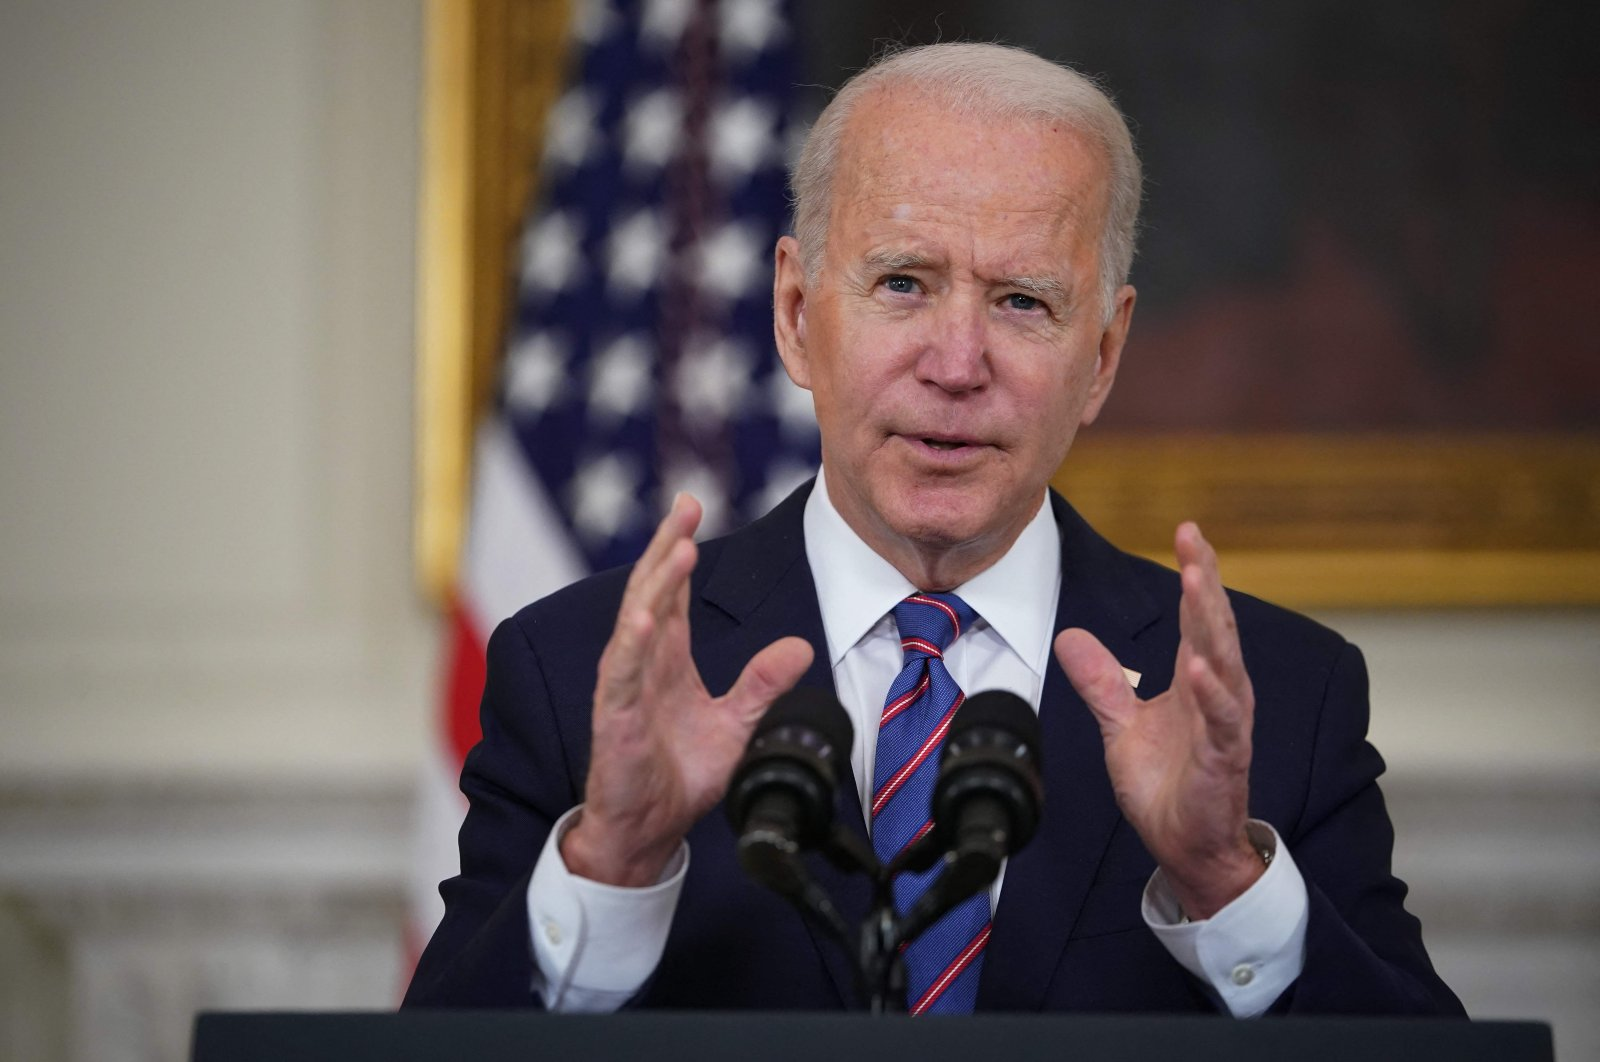 U.S. President Joe Biden speaks about the March jobs report in the State Dining Room of the White House in Washington, U.S., April 2, 2021. (AFP Photo)